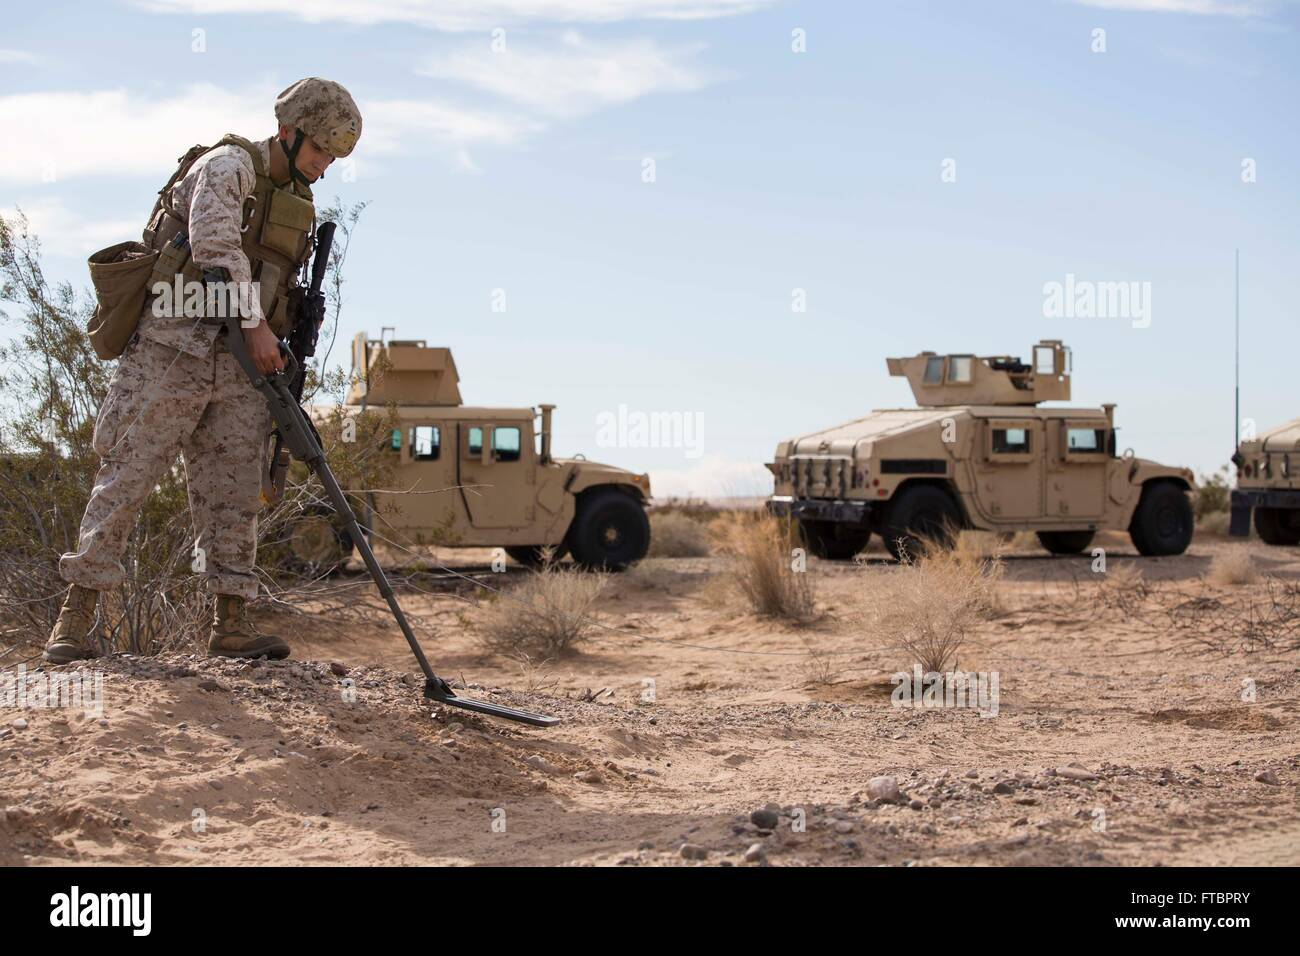 A U.S. Marine combat engineer sweeps for improvised explosive devices during a security force exercise in support - Stock Image